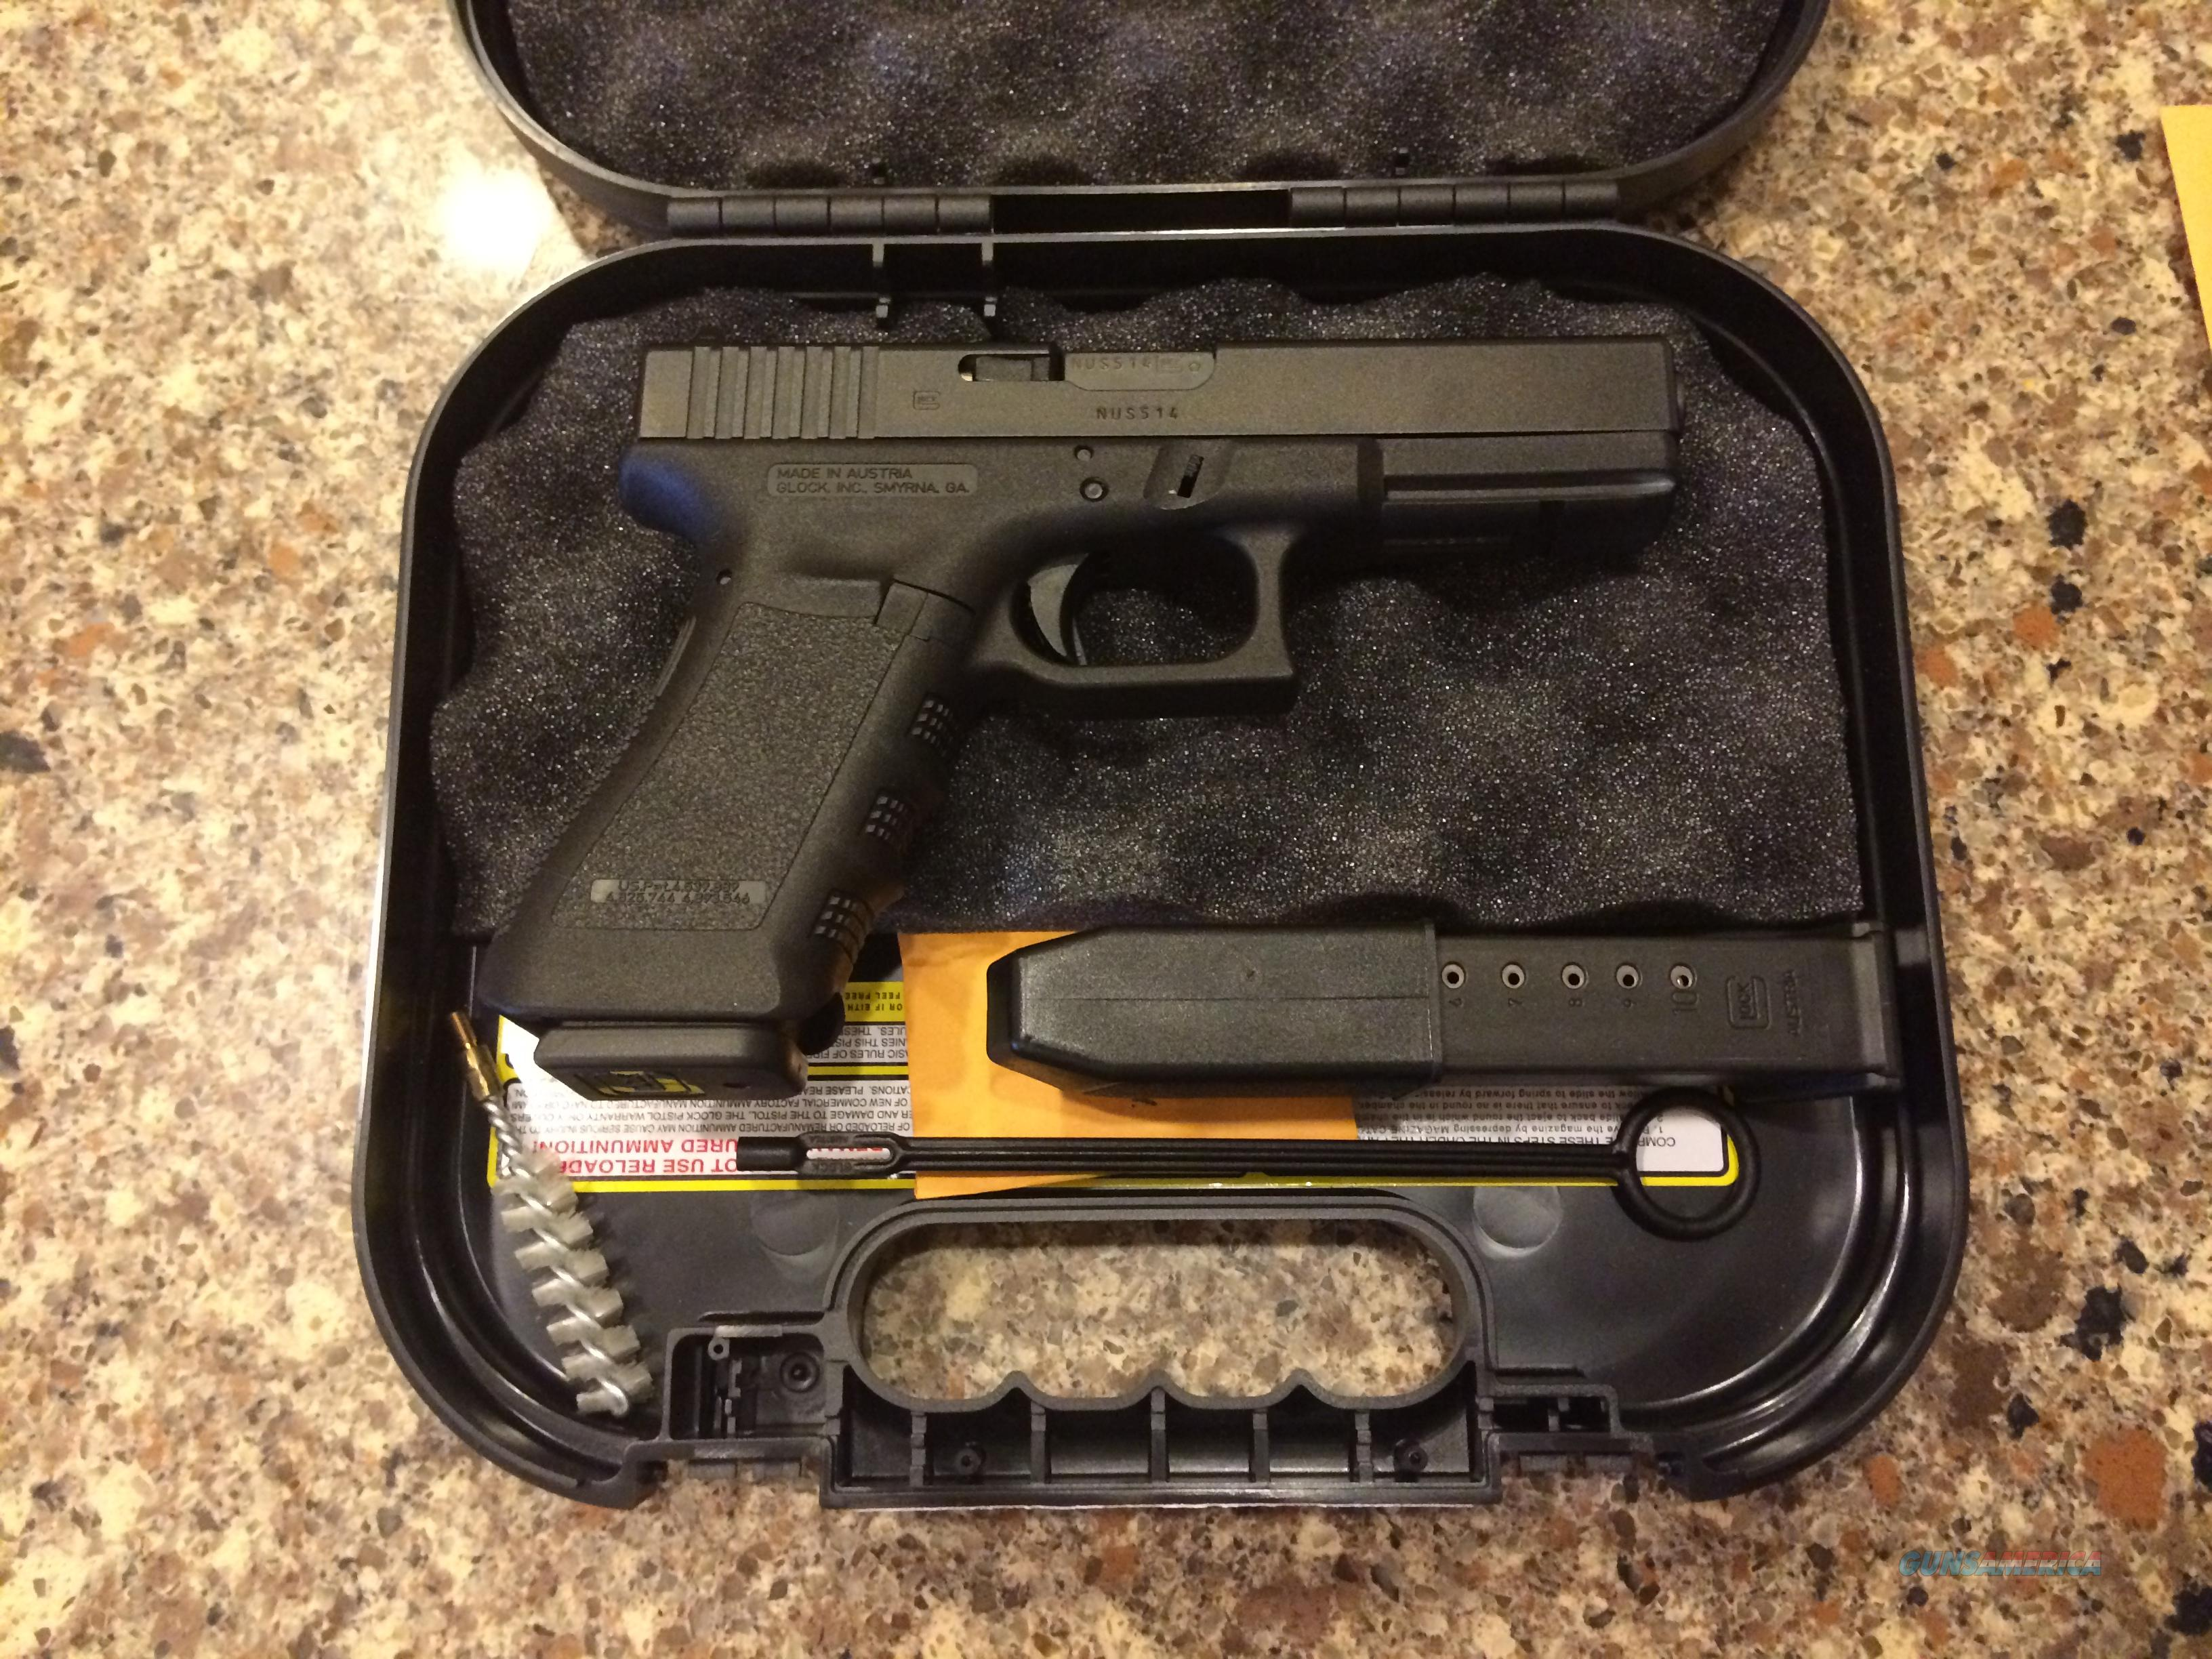 GLOCK 17 9MM GEN 3 WITH 2-10 ROUND MAGS TO COMPLY WITH MOST STATE LAWS  Guns > Pistols > Glock Pistols > 17